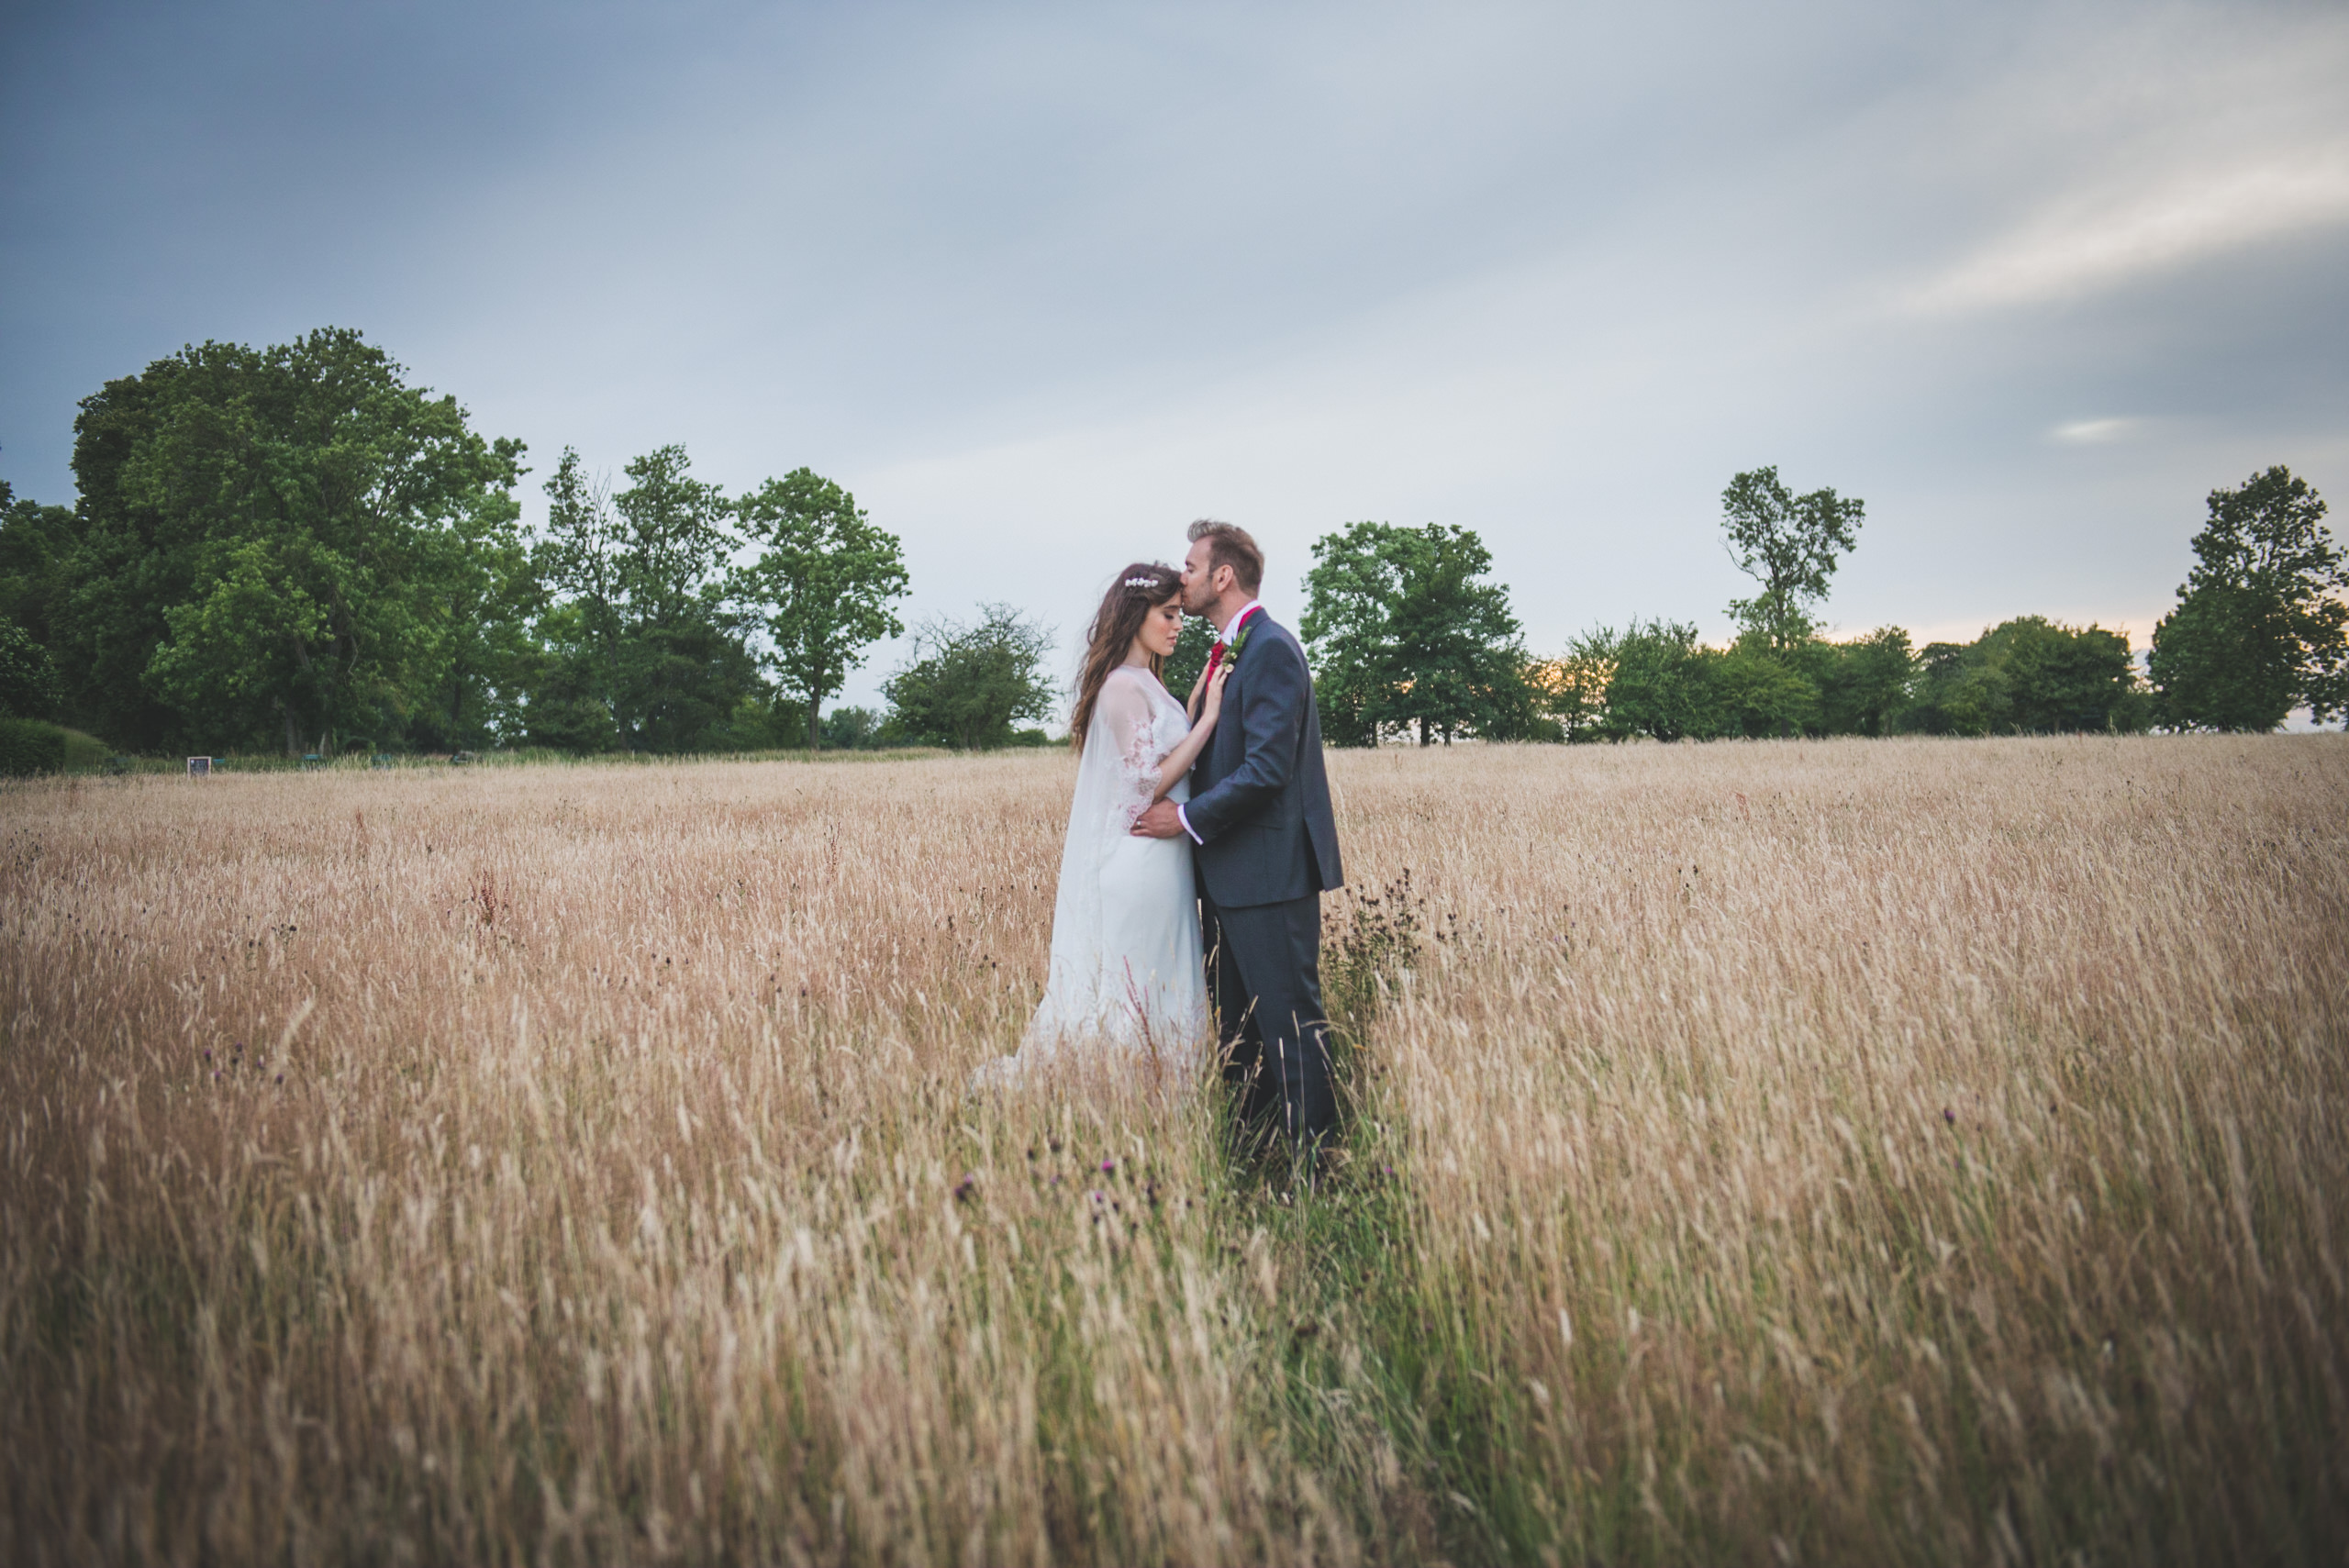 Lyvedon New Bield, Styled Wedding photography, Wedding Photographer, Whimsical, Bridal, Florist, Stylist, Models